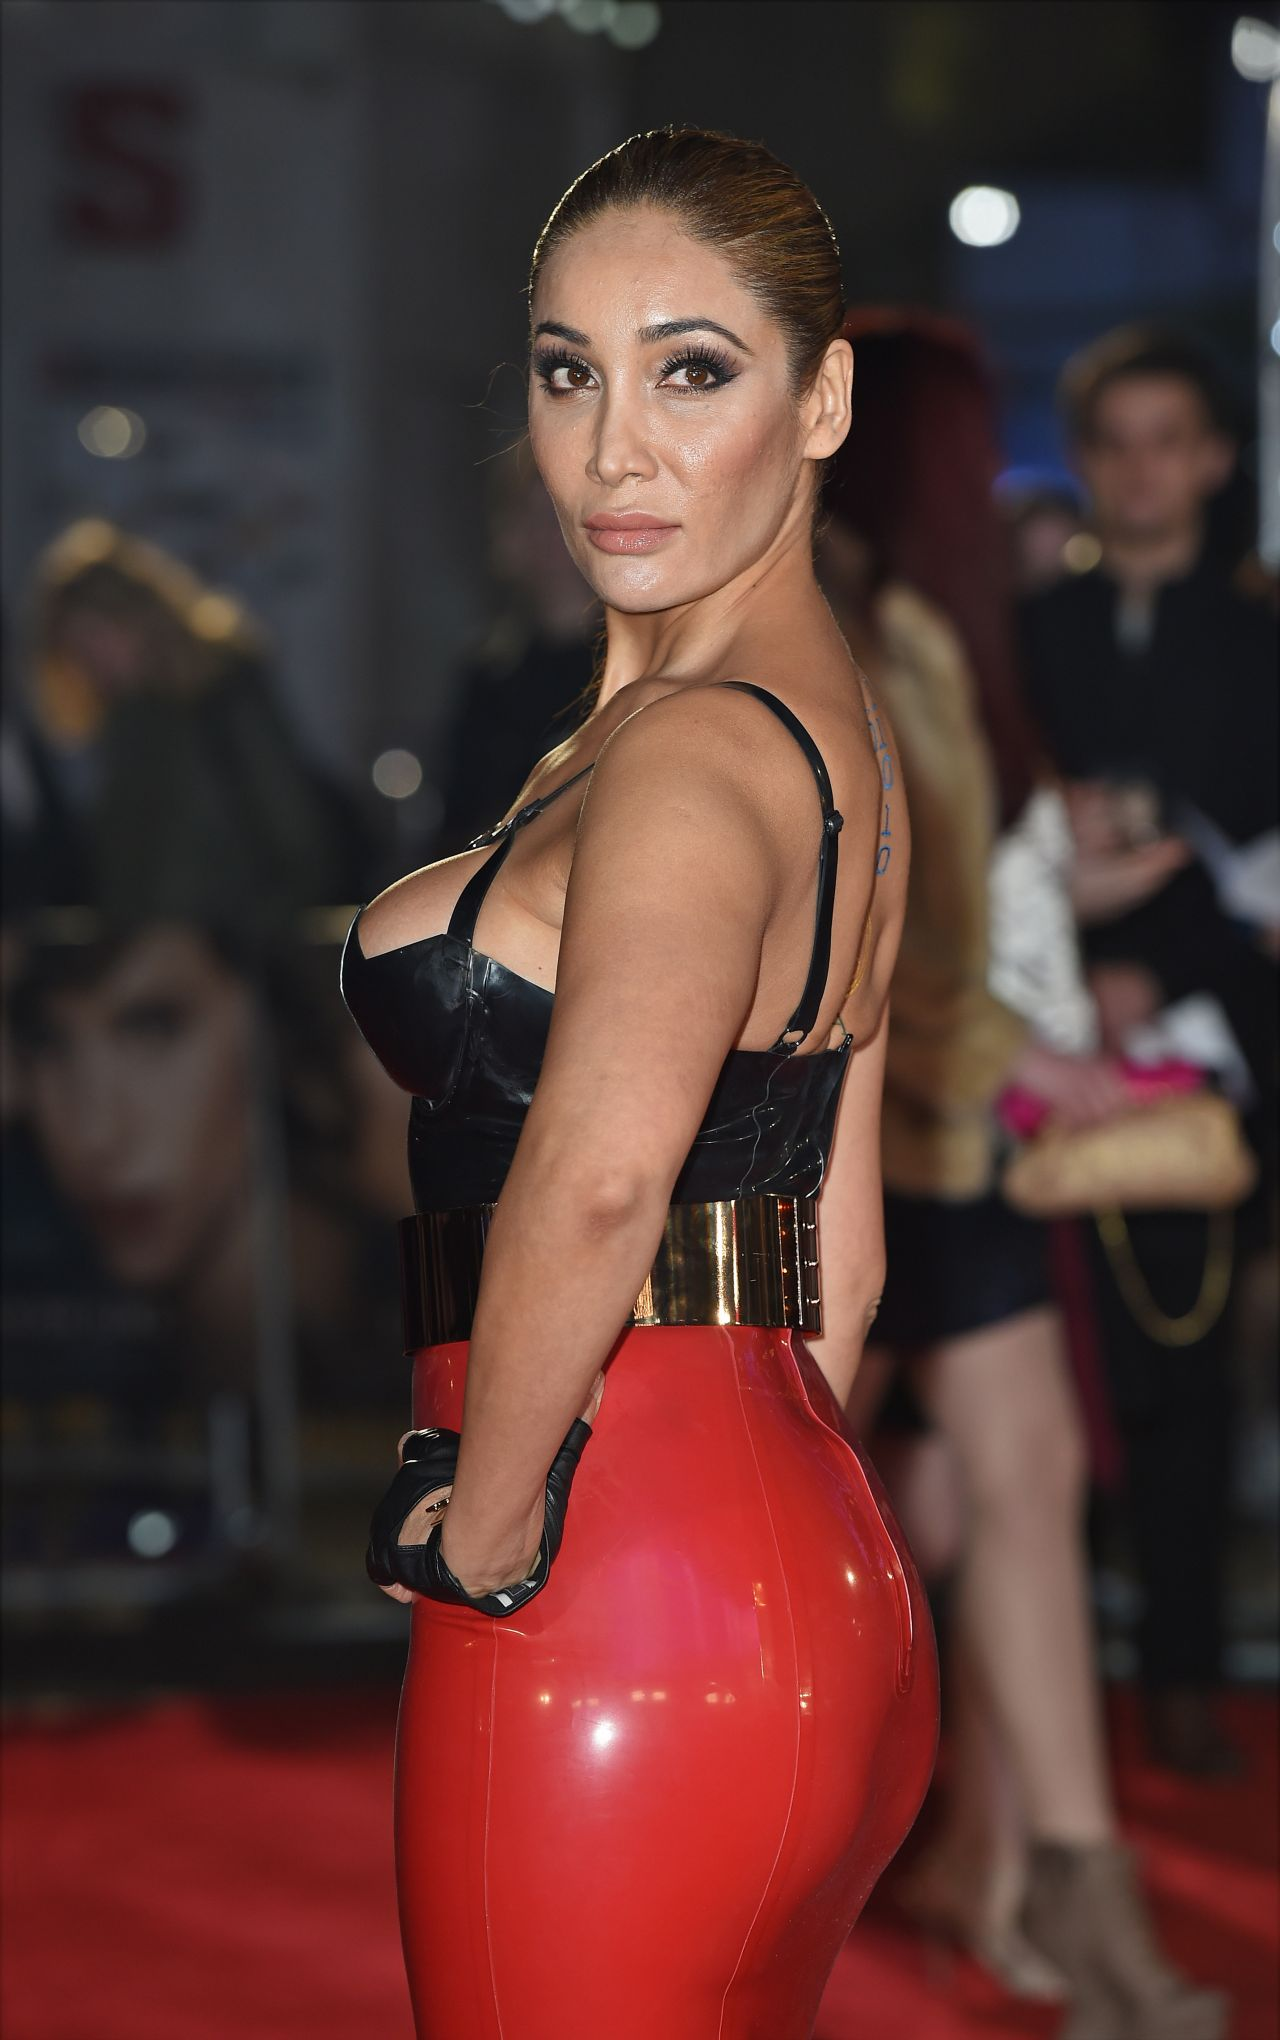 The British-Indian model and singer Sofia Hayat